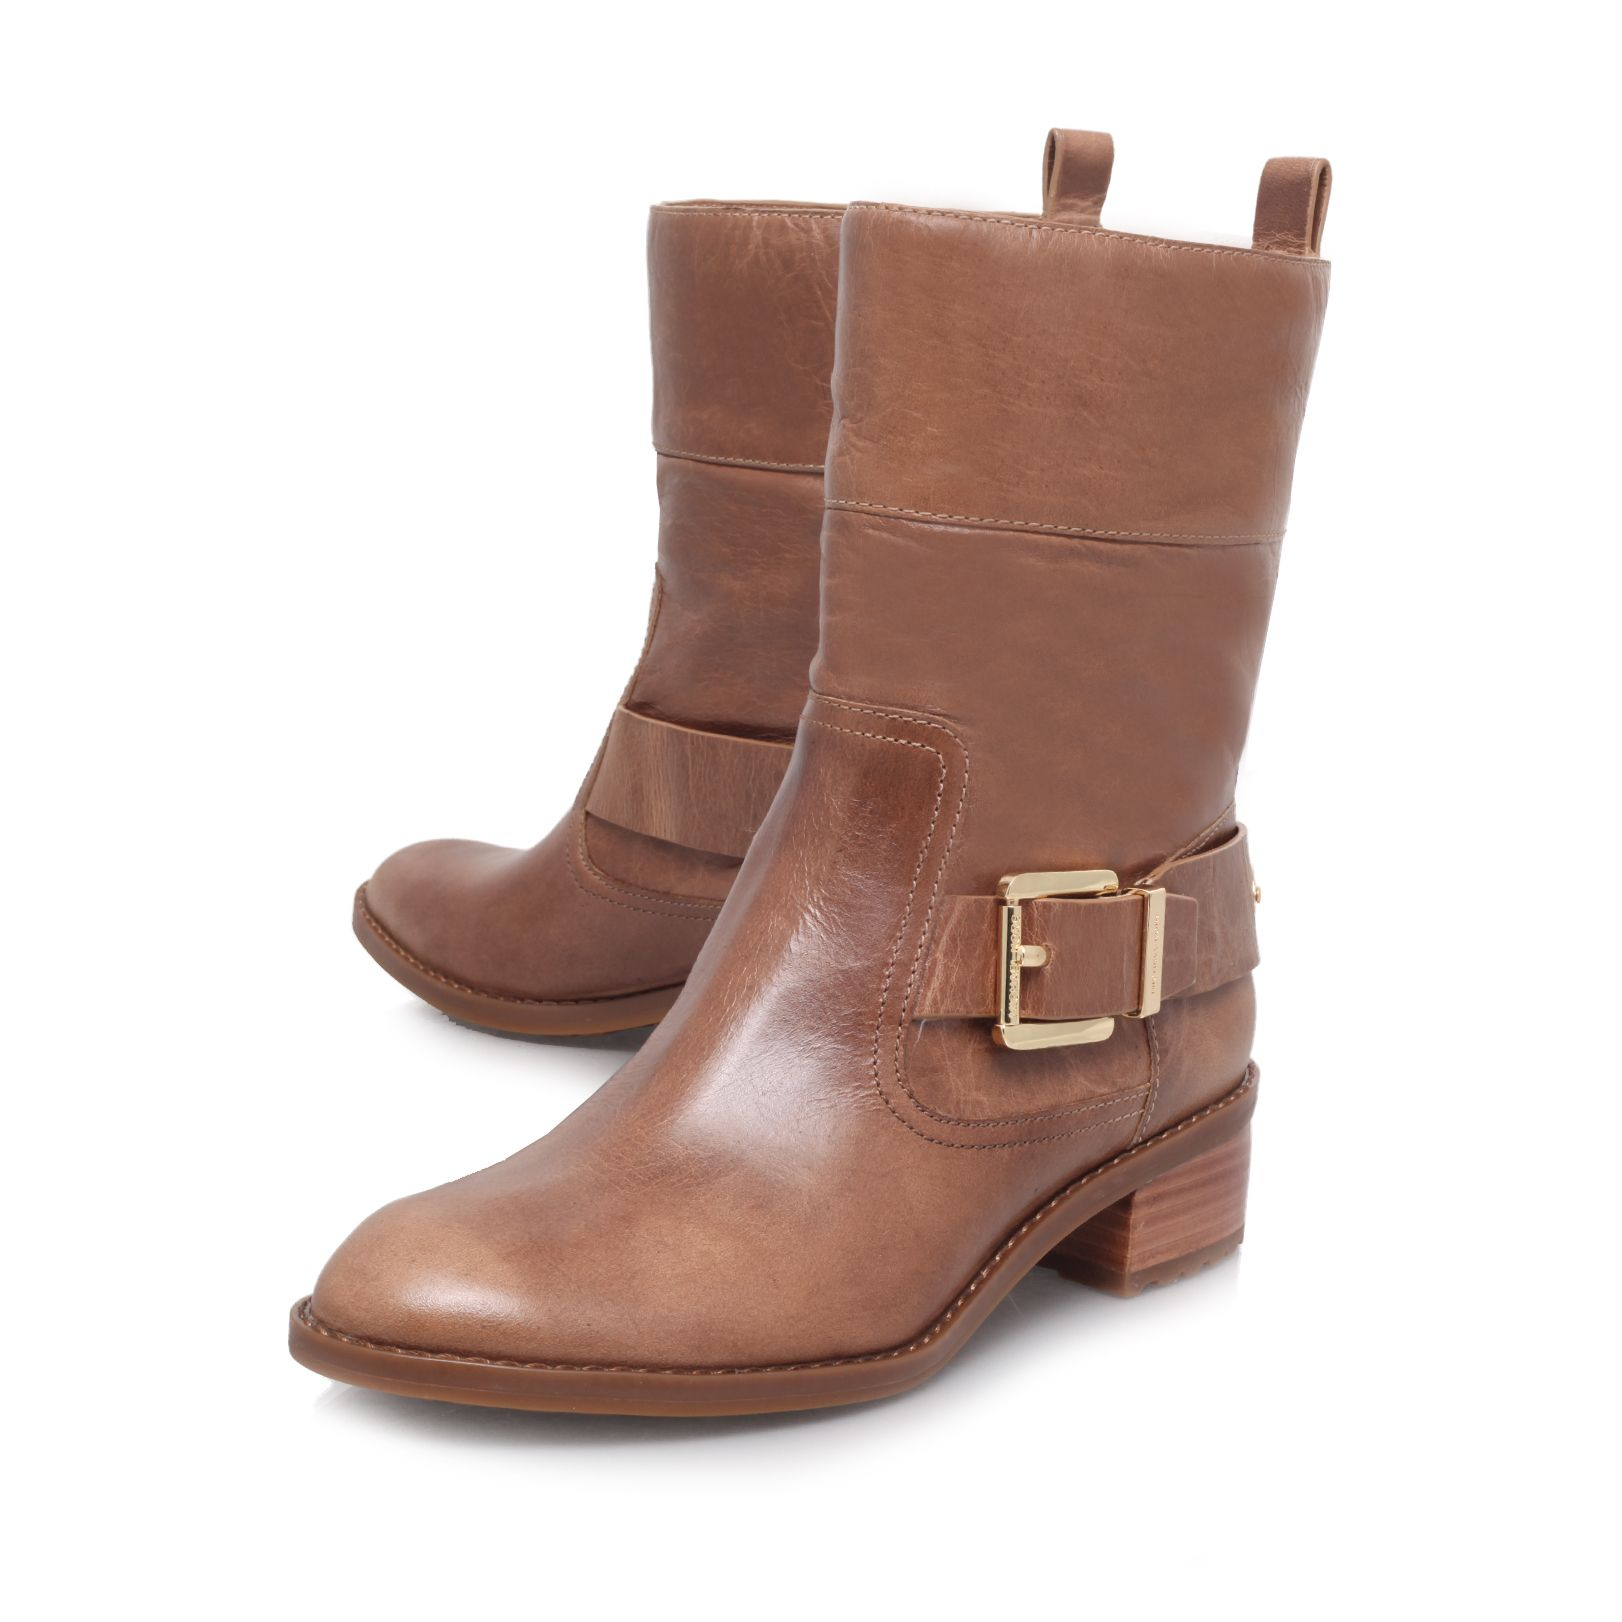 Michael Kors Leather Rosewell Ankle Boots in Taupe (Brown)